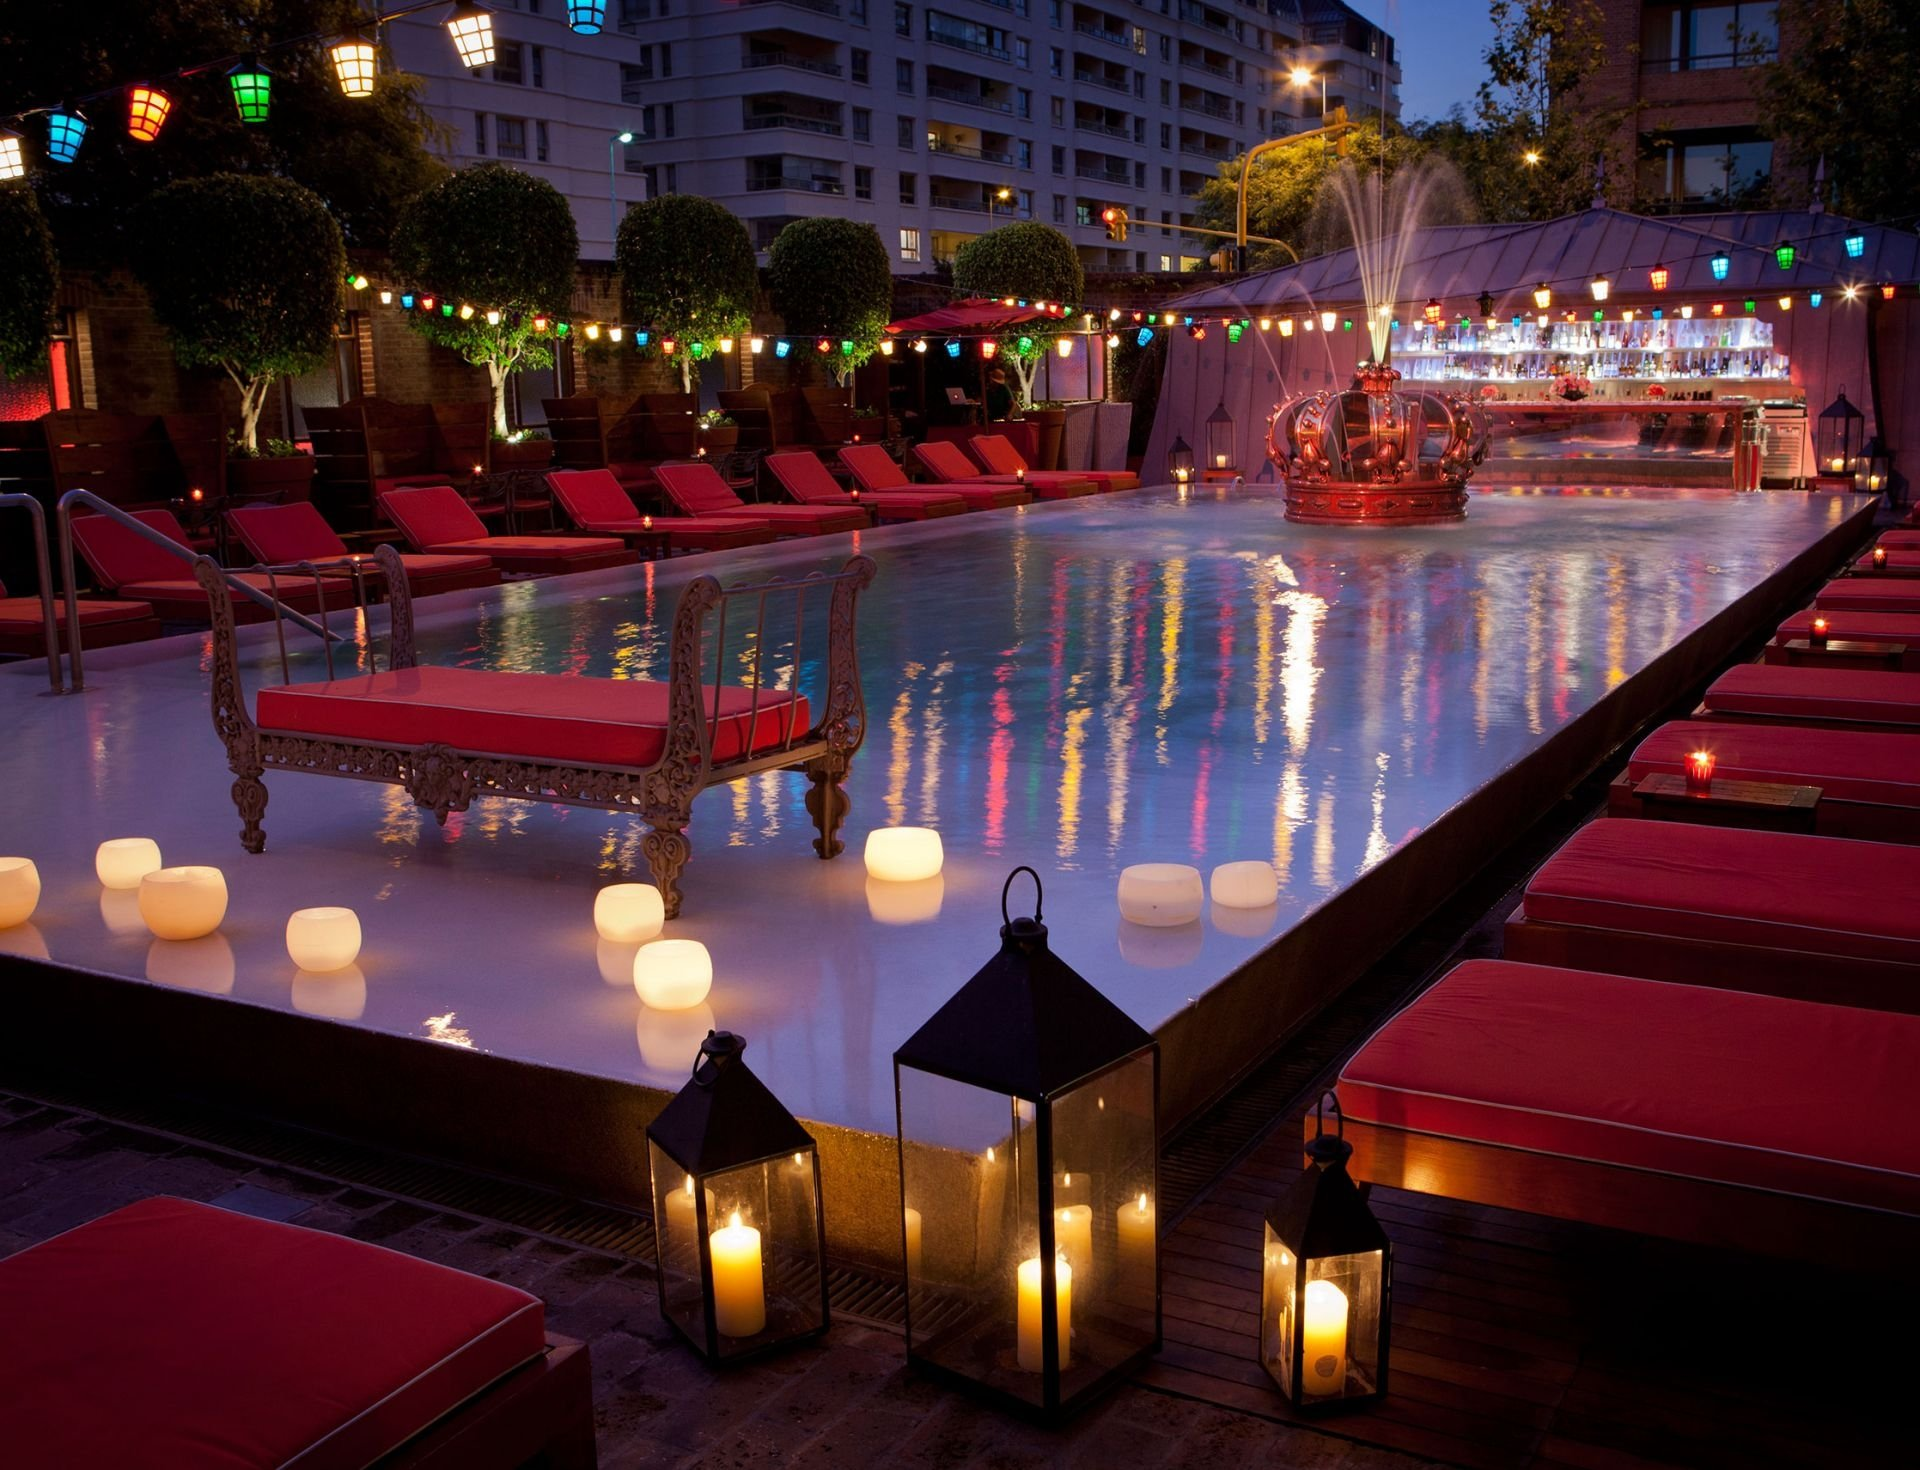 Poolbar at night